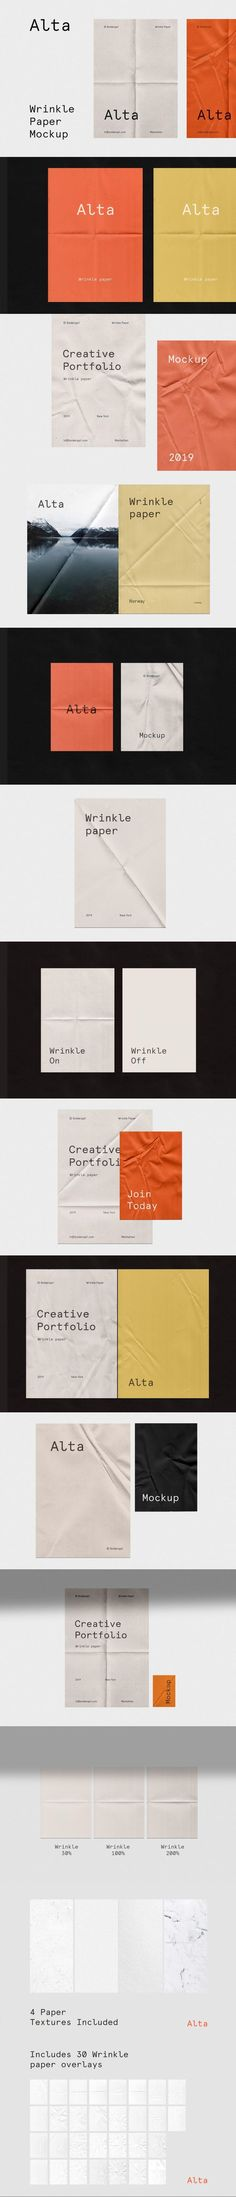 Wrinkle - Fold Paper Mockup #invitation #saucer #wrinke #sweaterpattern #clothingbrand #fruits #plate #color #pinterest #overlay #mockups #juice #natural #figs #psd #mock-up #design #creator #guidelines Waffles, Pancakes, Mockup Templates, Figs, Im Happy, Creative Studio, Check It Out, Shout Out, Paper